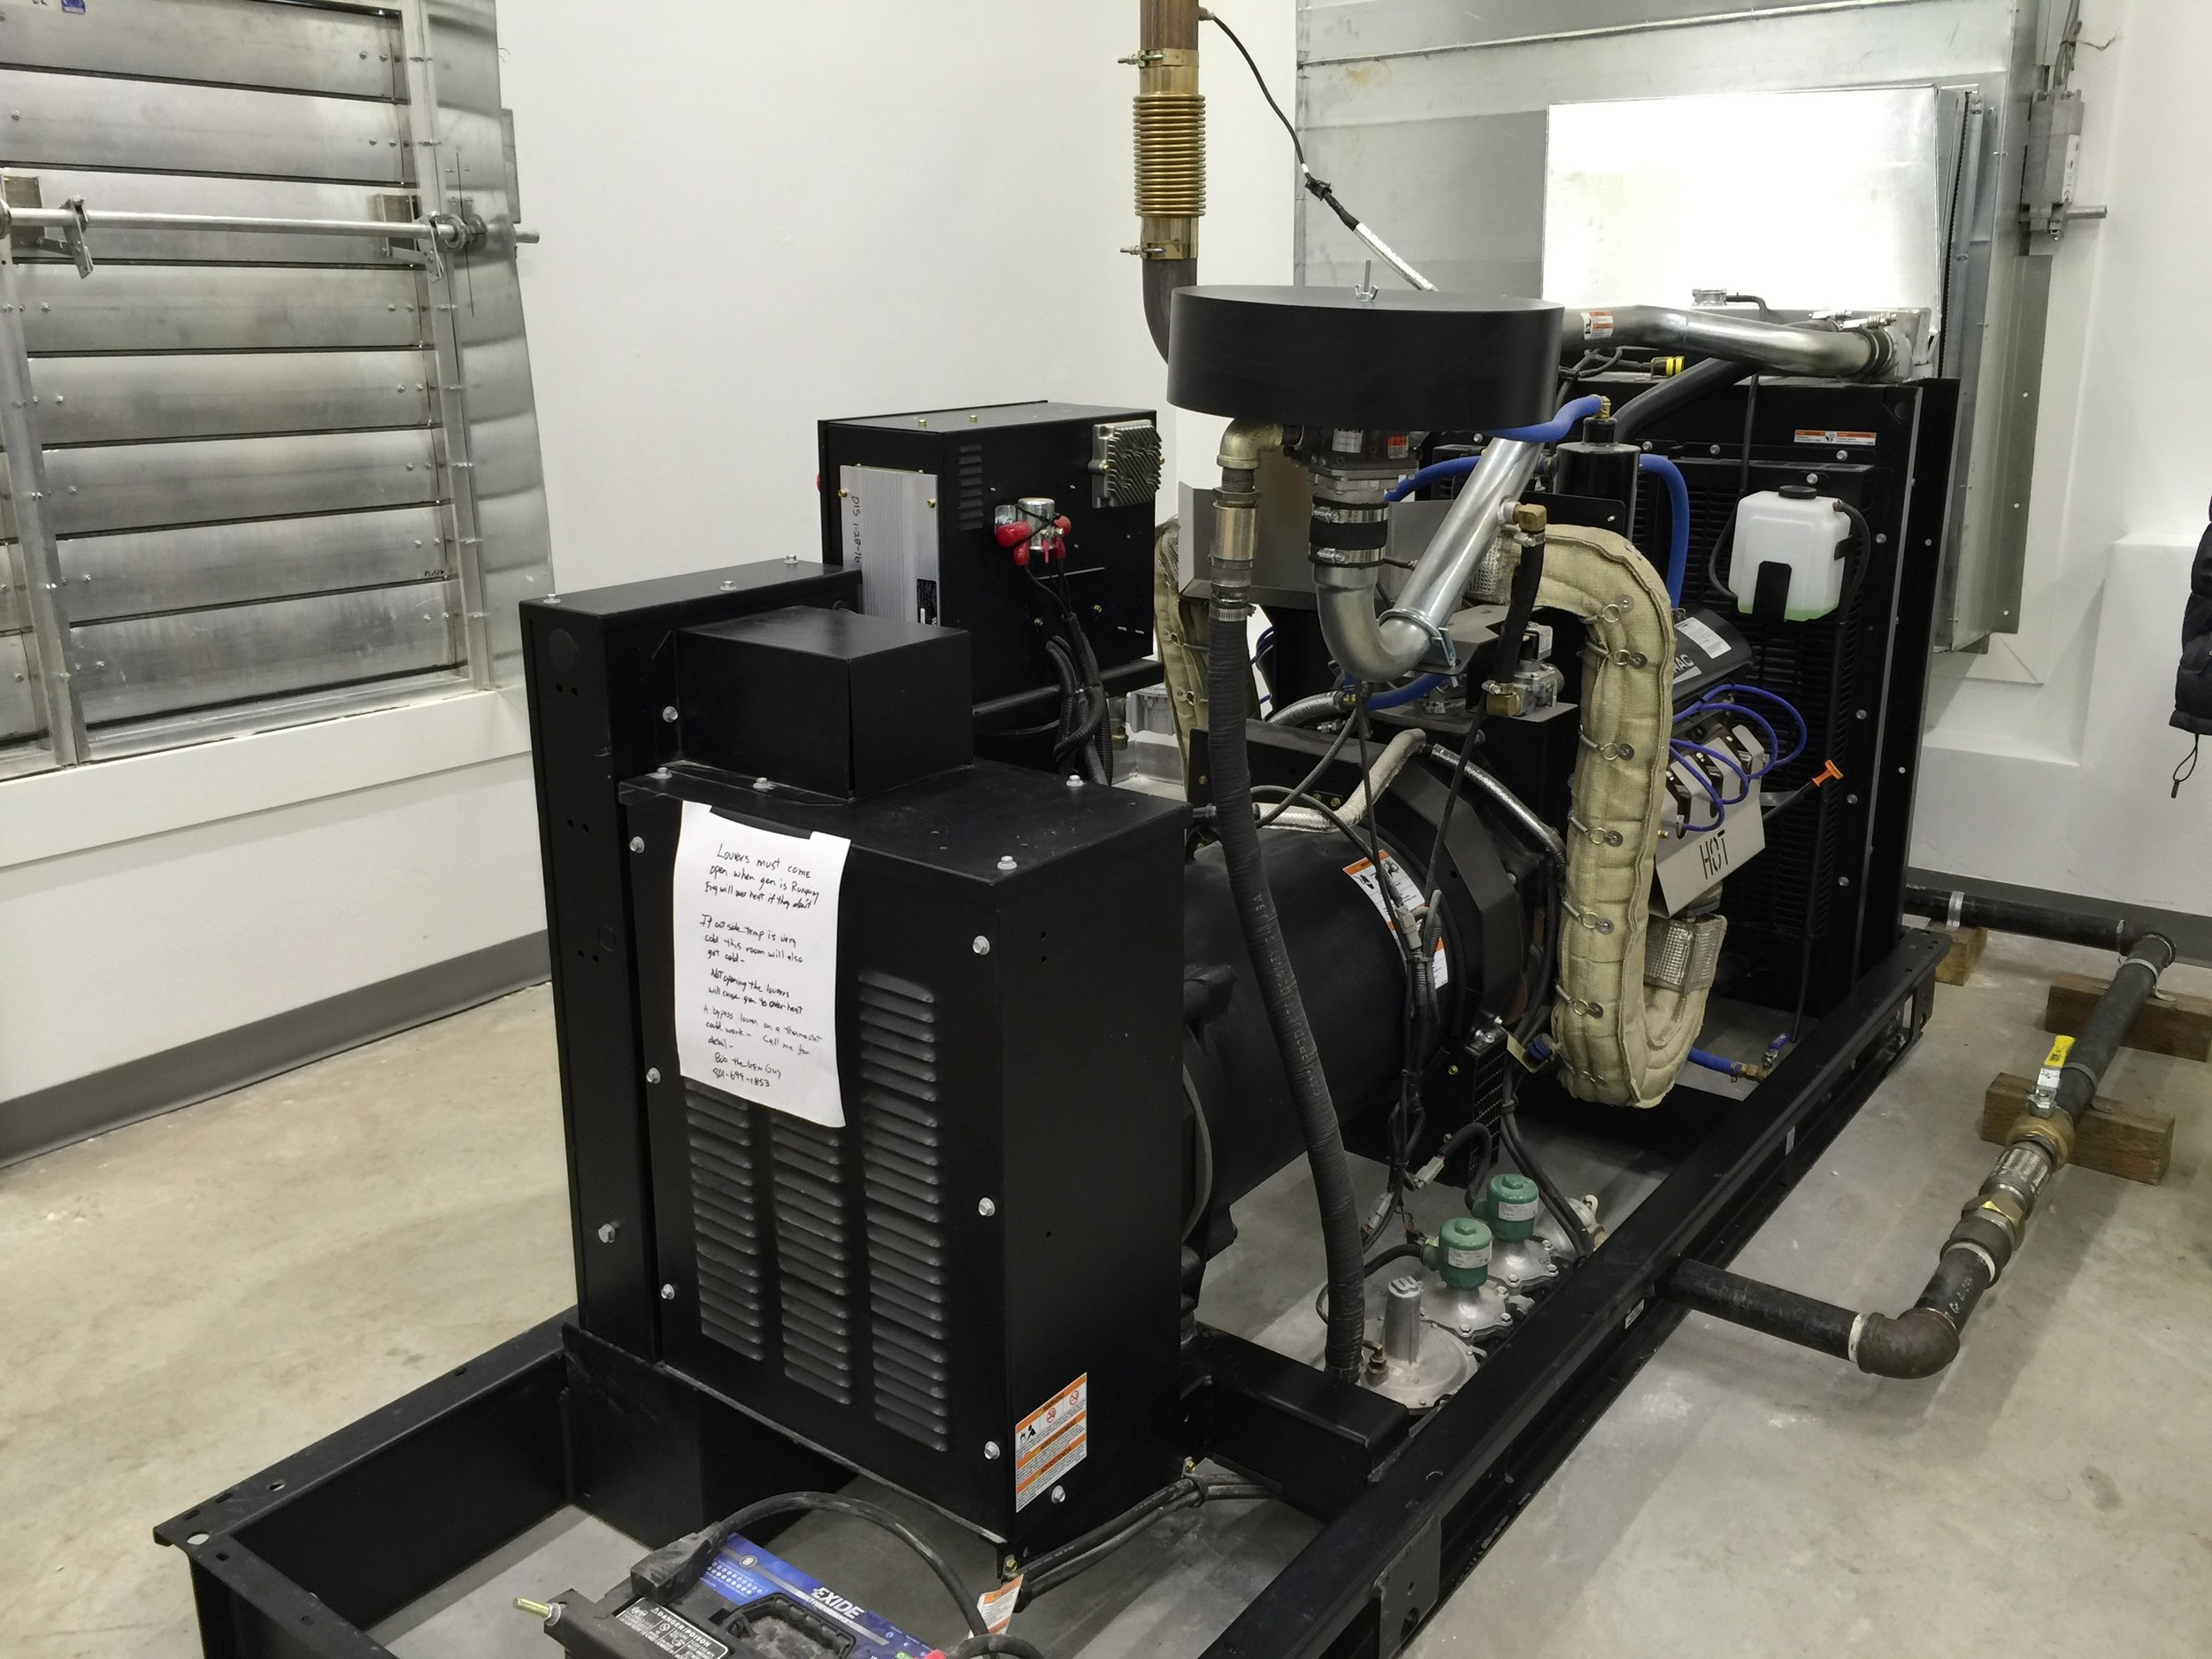 Typical pump station emergency back-up generator.